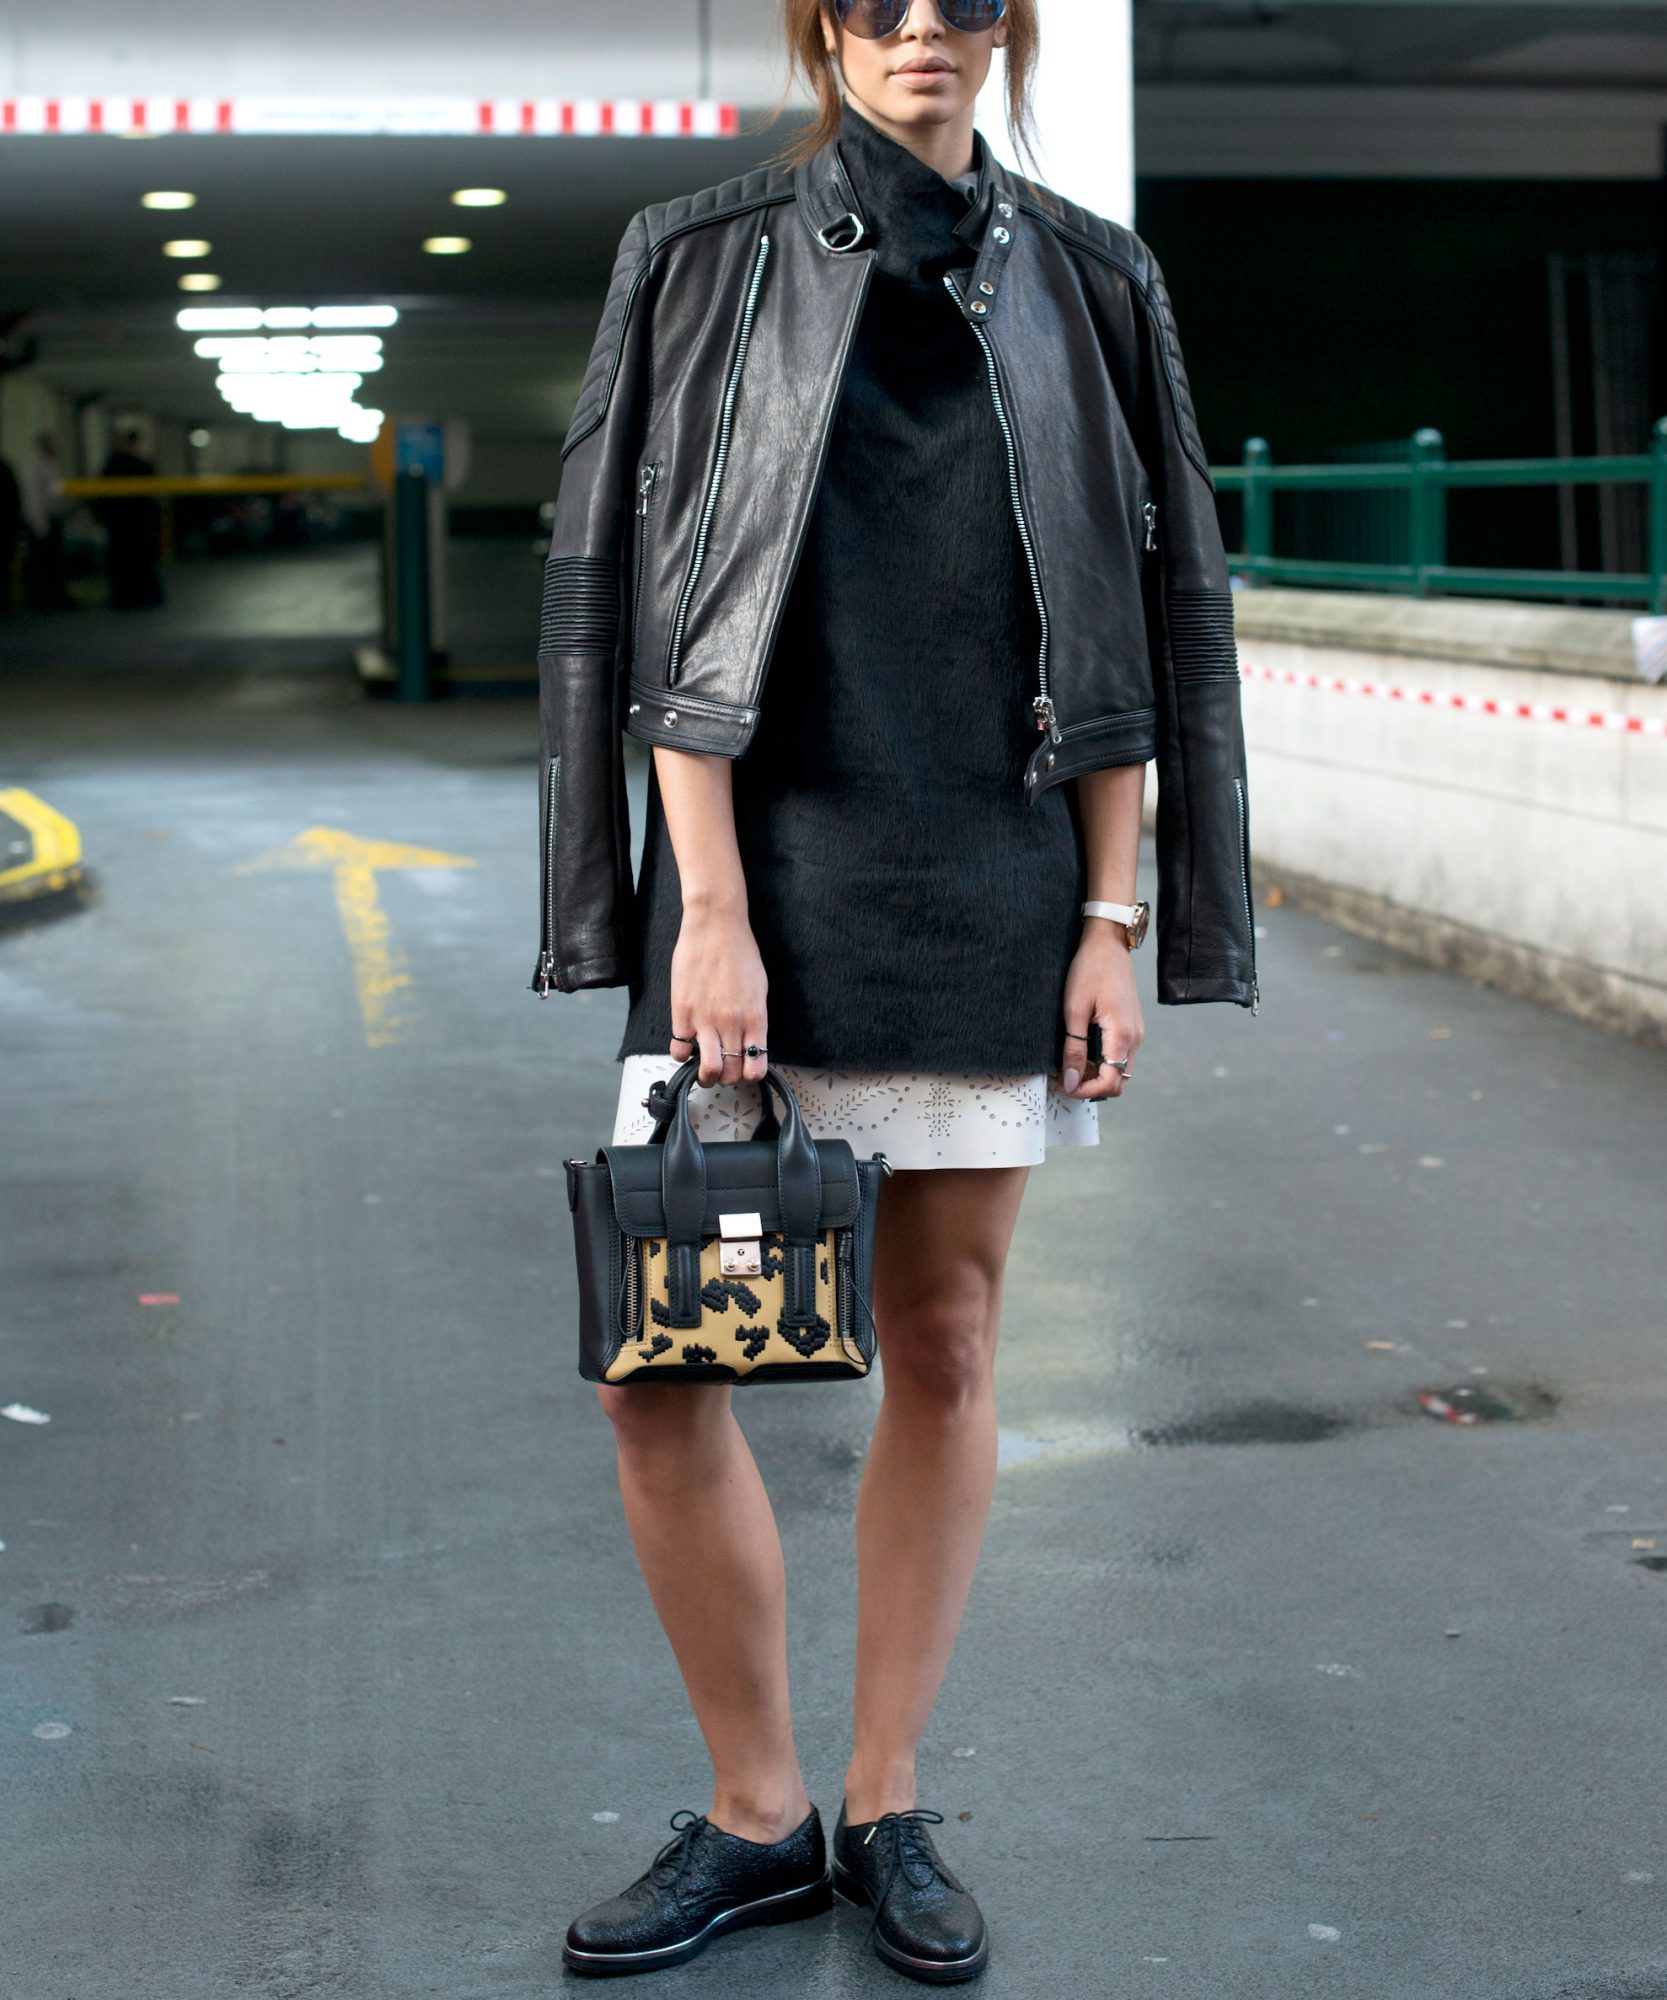 Go for a Downtown Chic Look